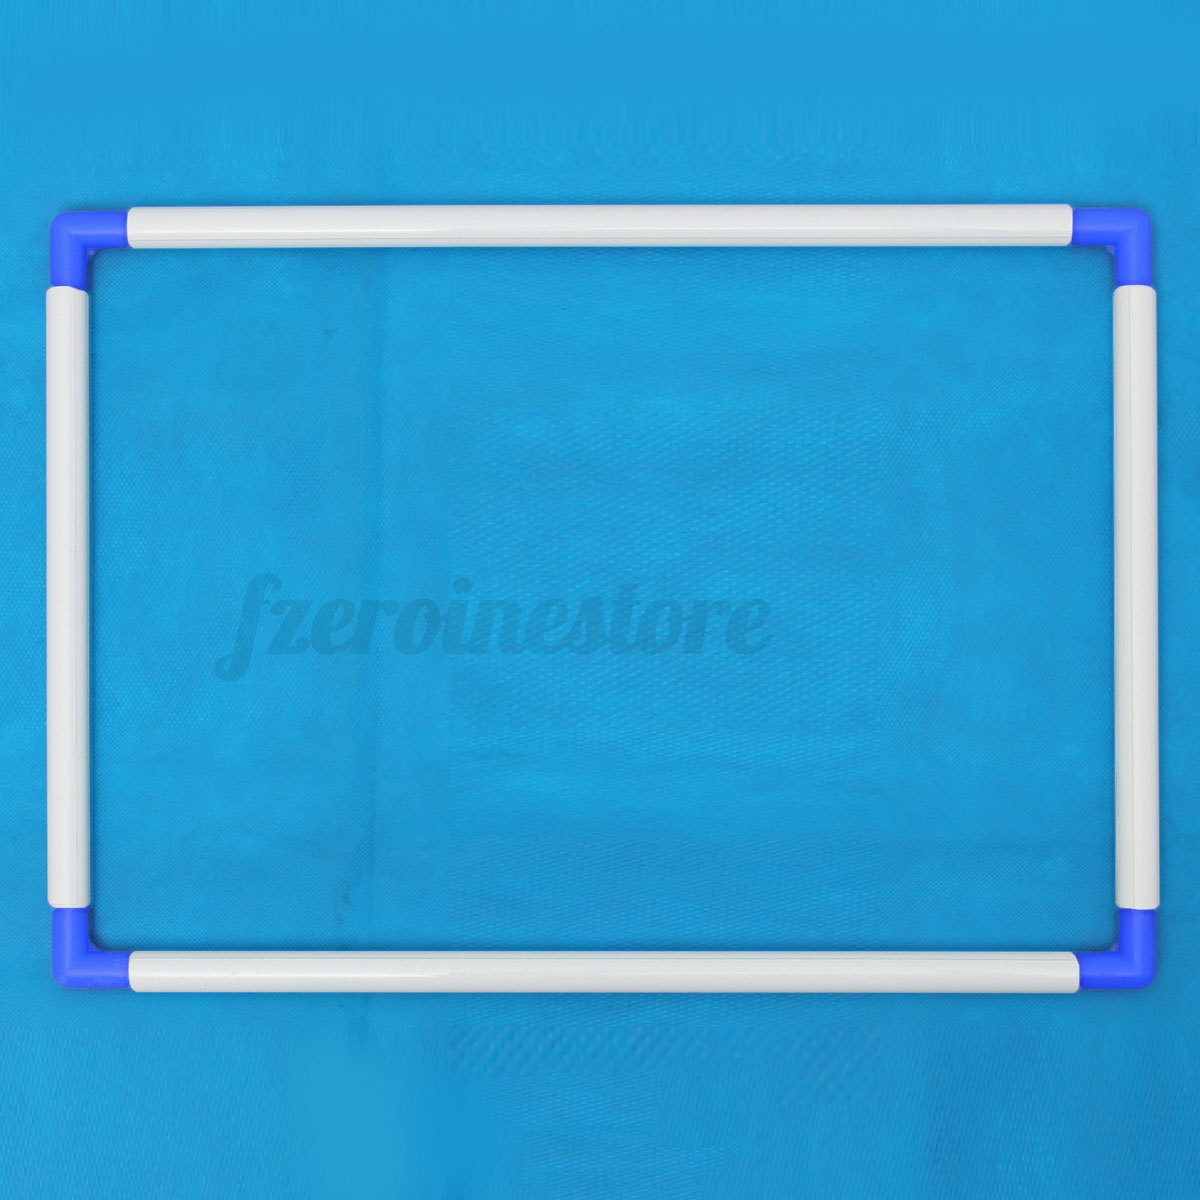 Plastic embroidery frame cross stitch hoop craft tool